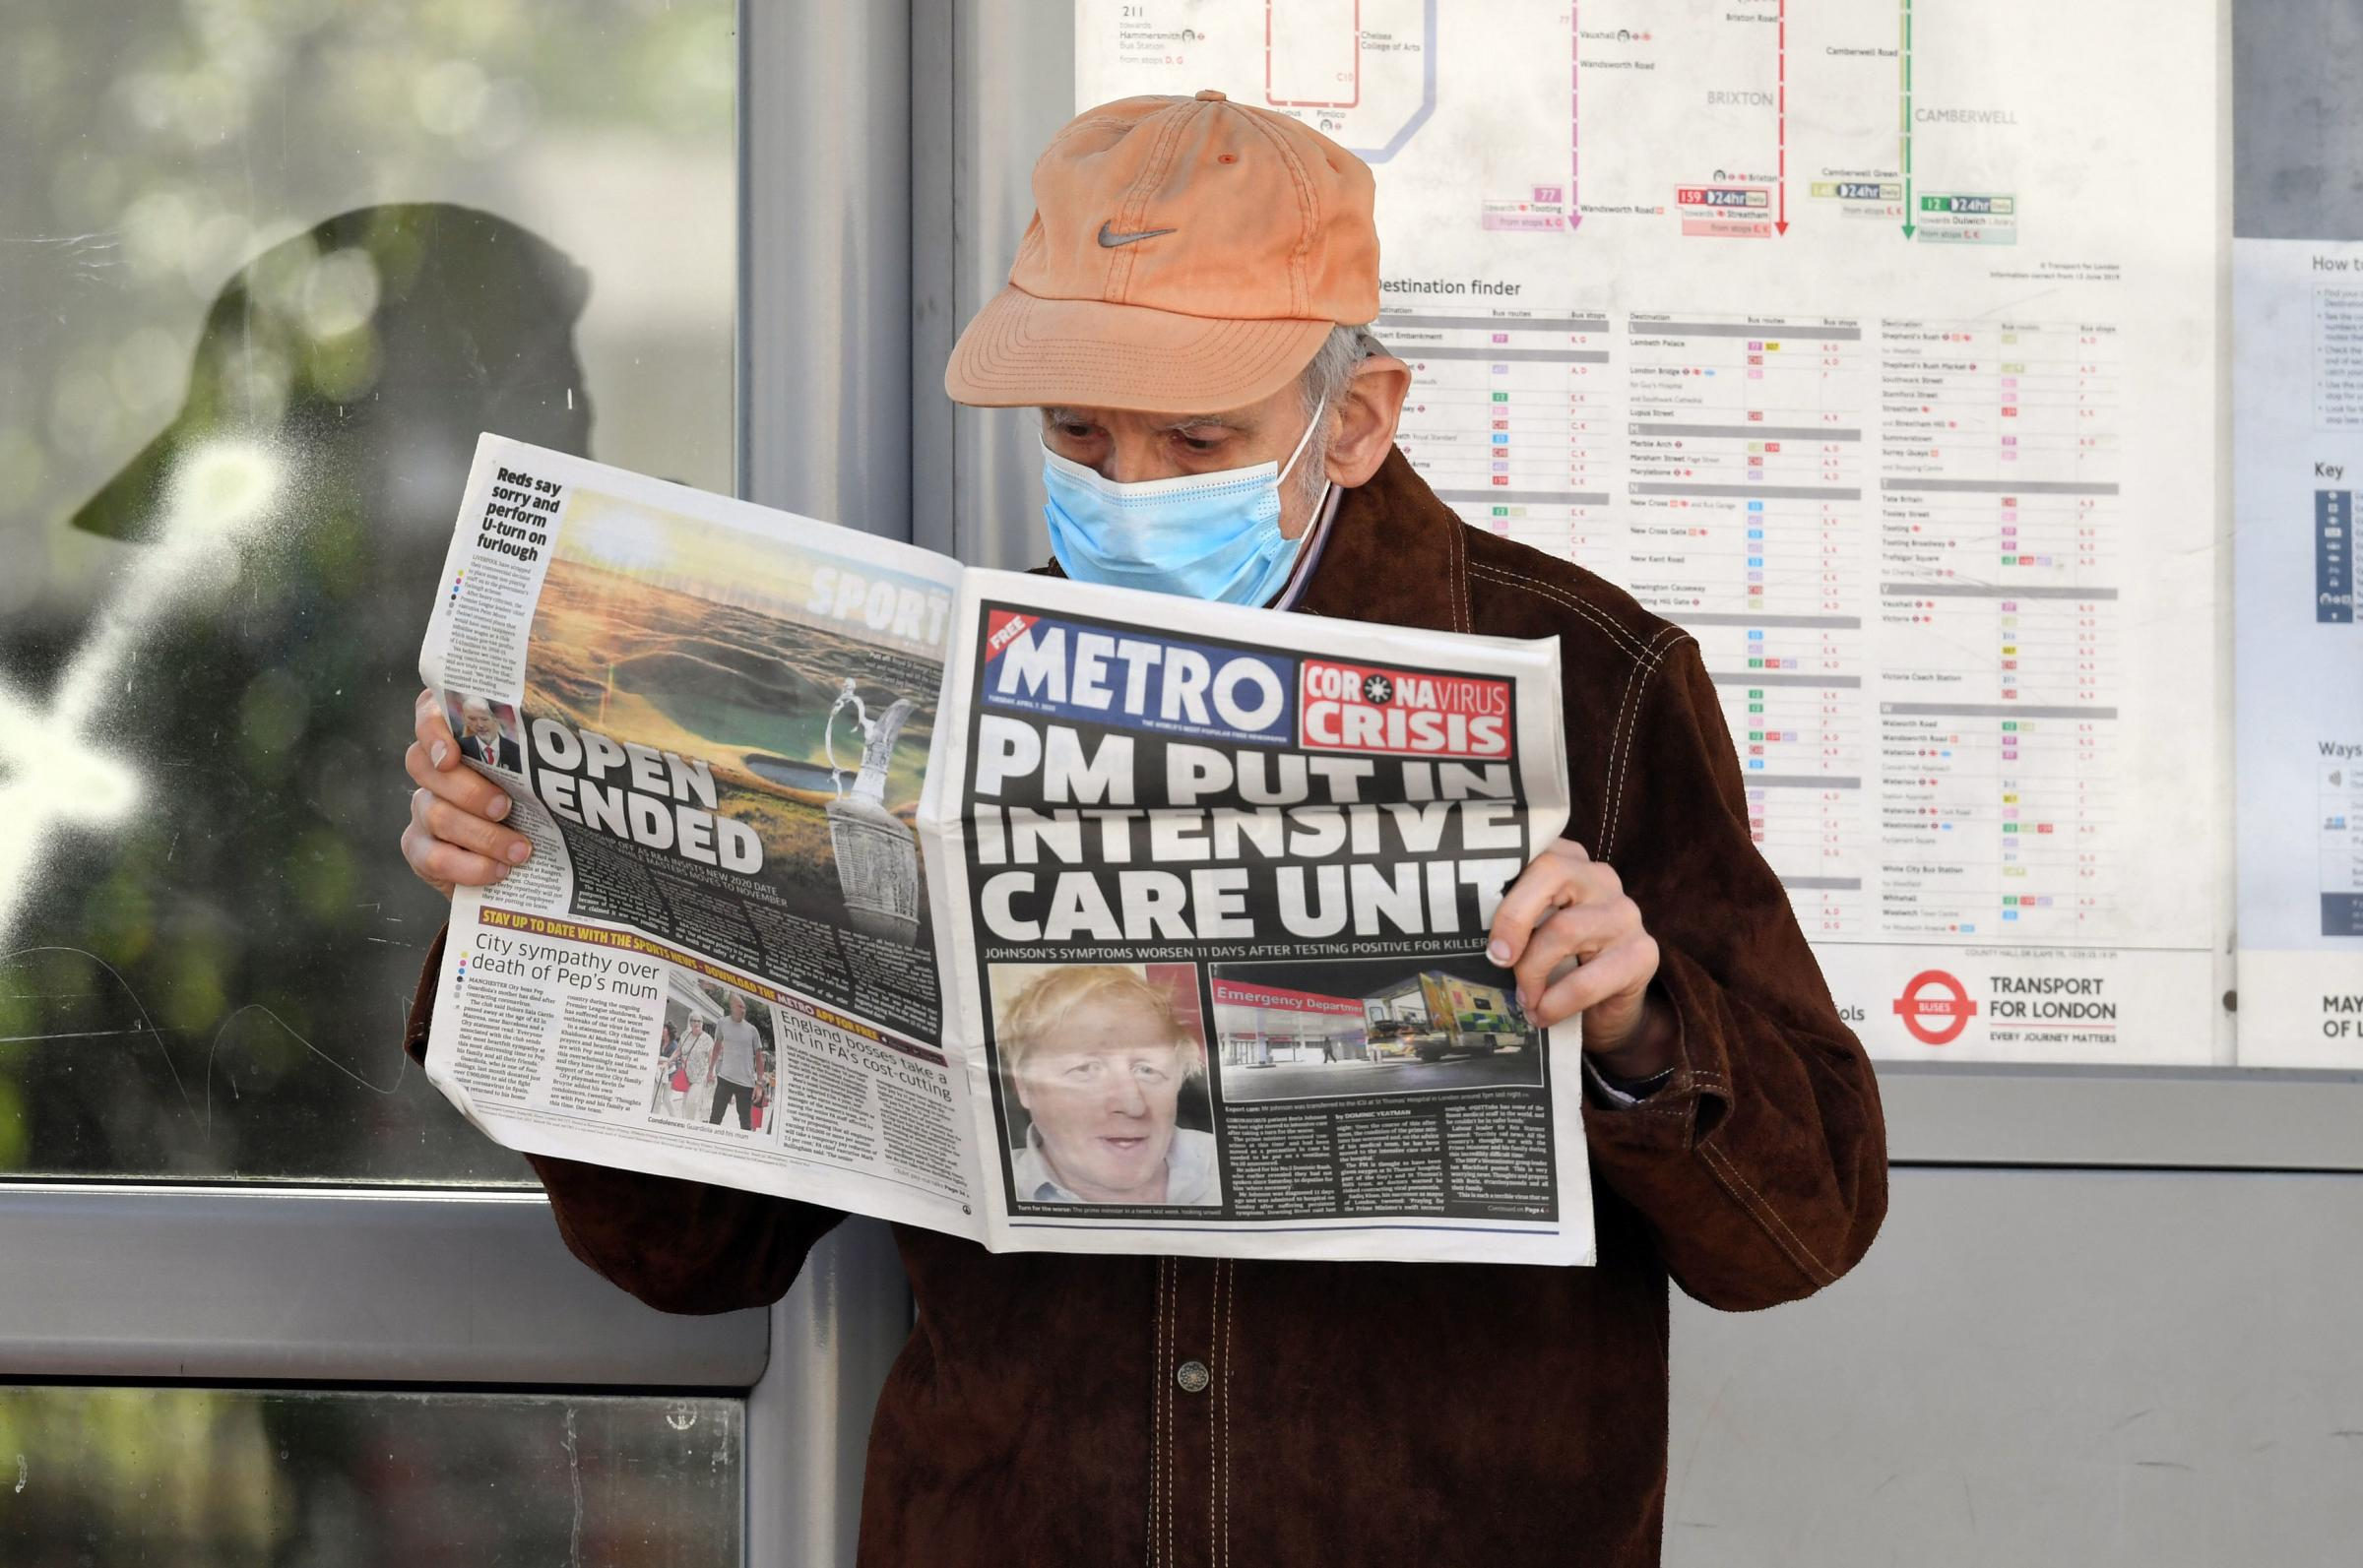 The closure of newspapers signals dark times ahead